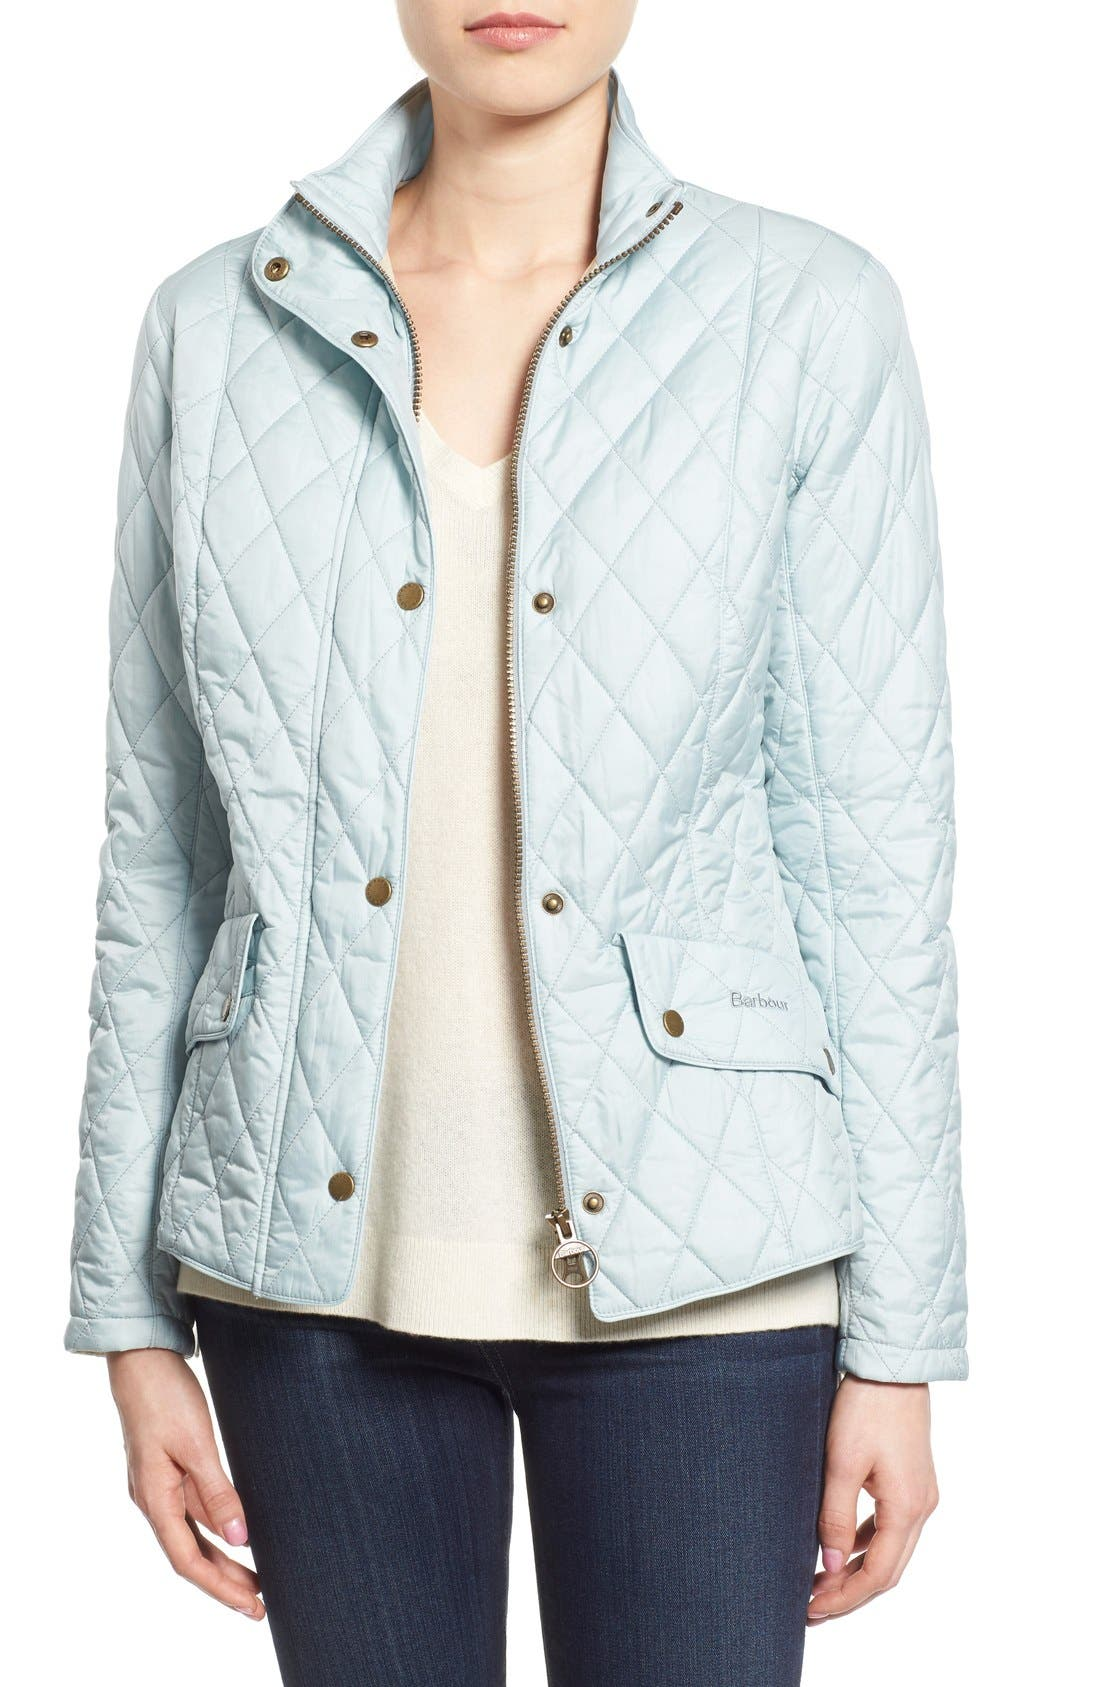 Alternate Image 1 Selected - Barbour 'Flyweight Cavalry' Quilted Jacket